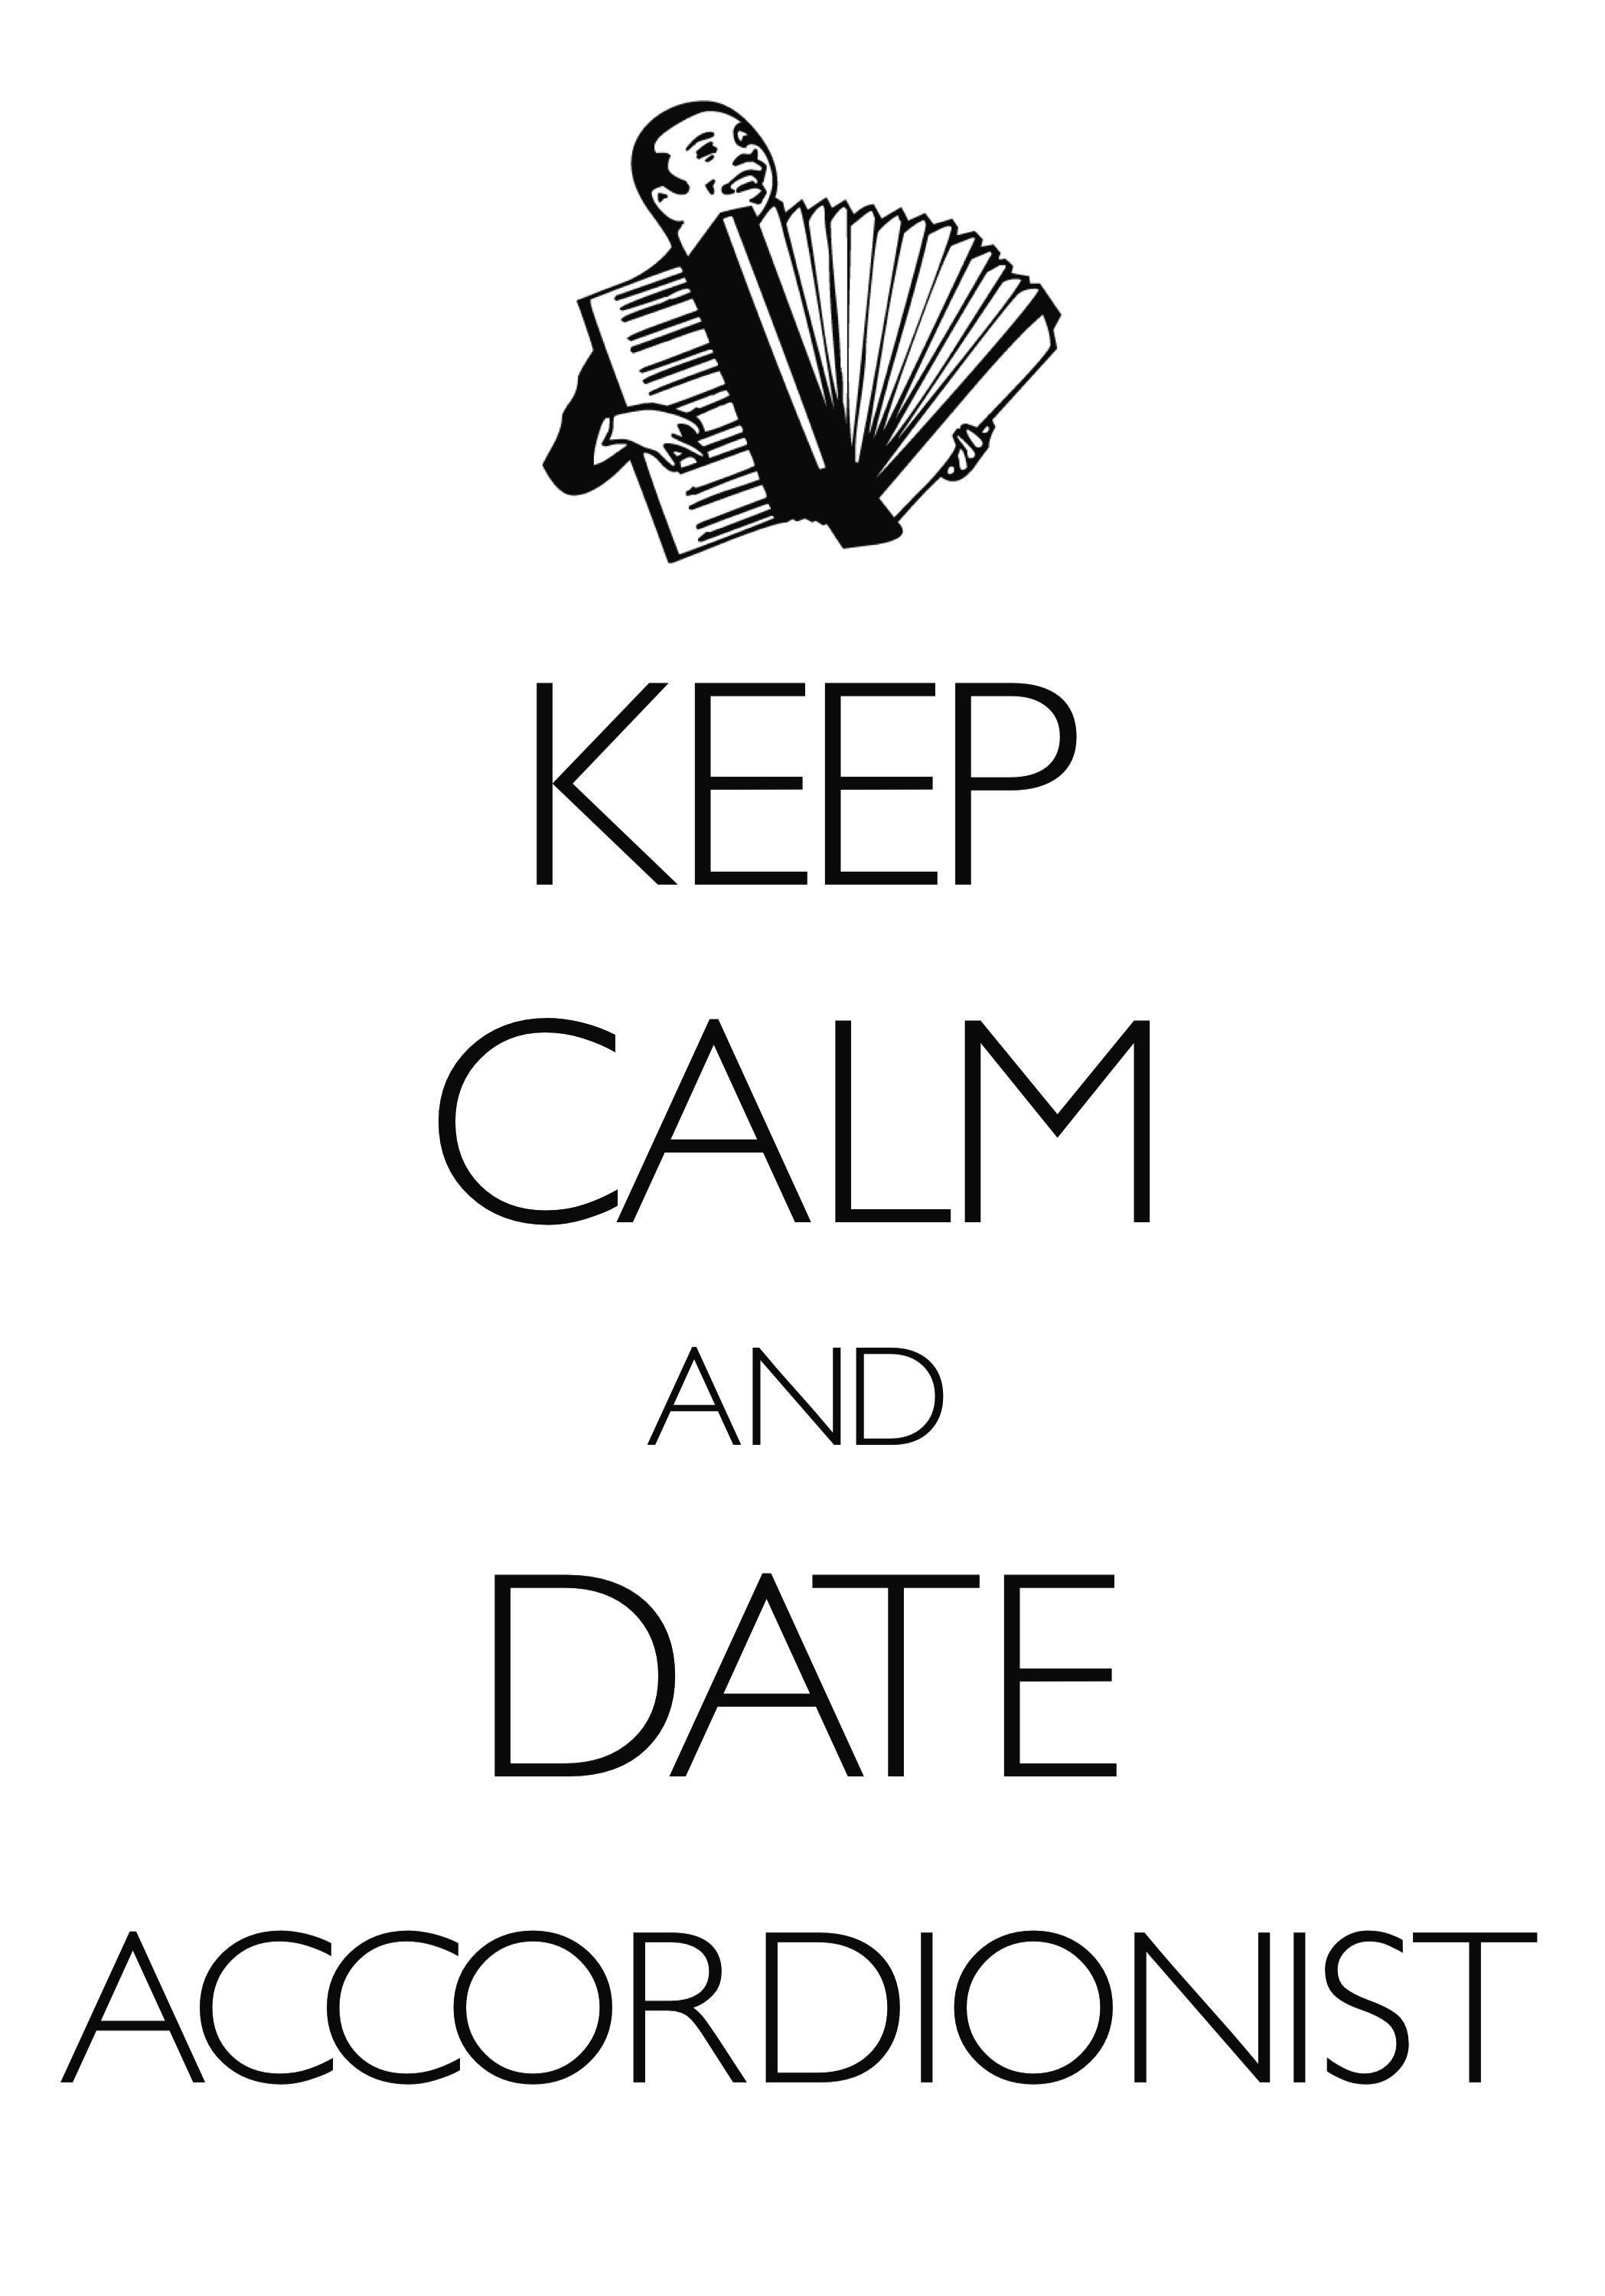 keep calm and date an accordionist / created with Keep Calm and Carry On for iOS #keepcalm #datingtips #accordion